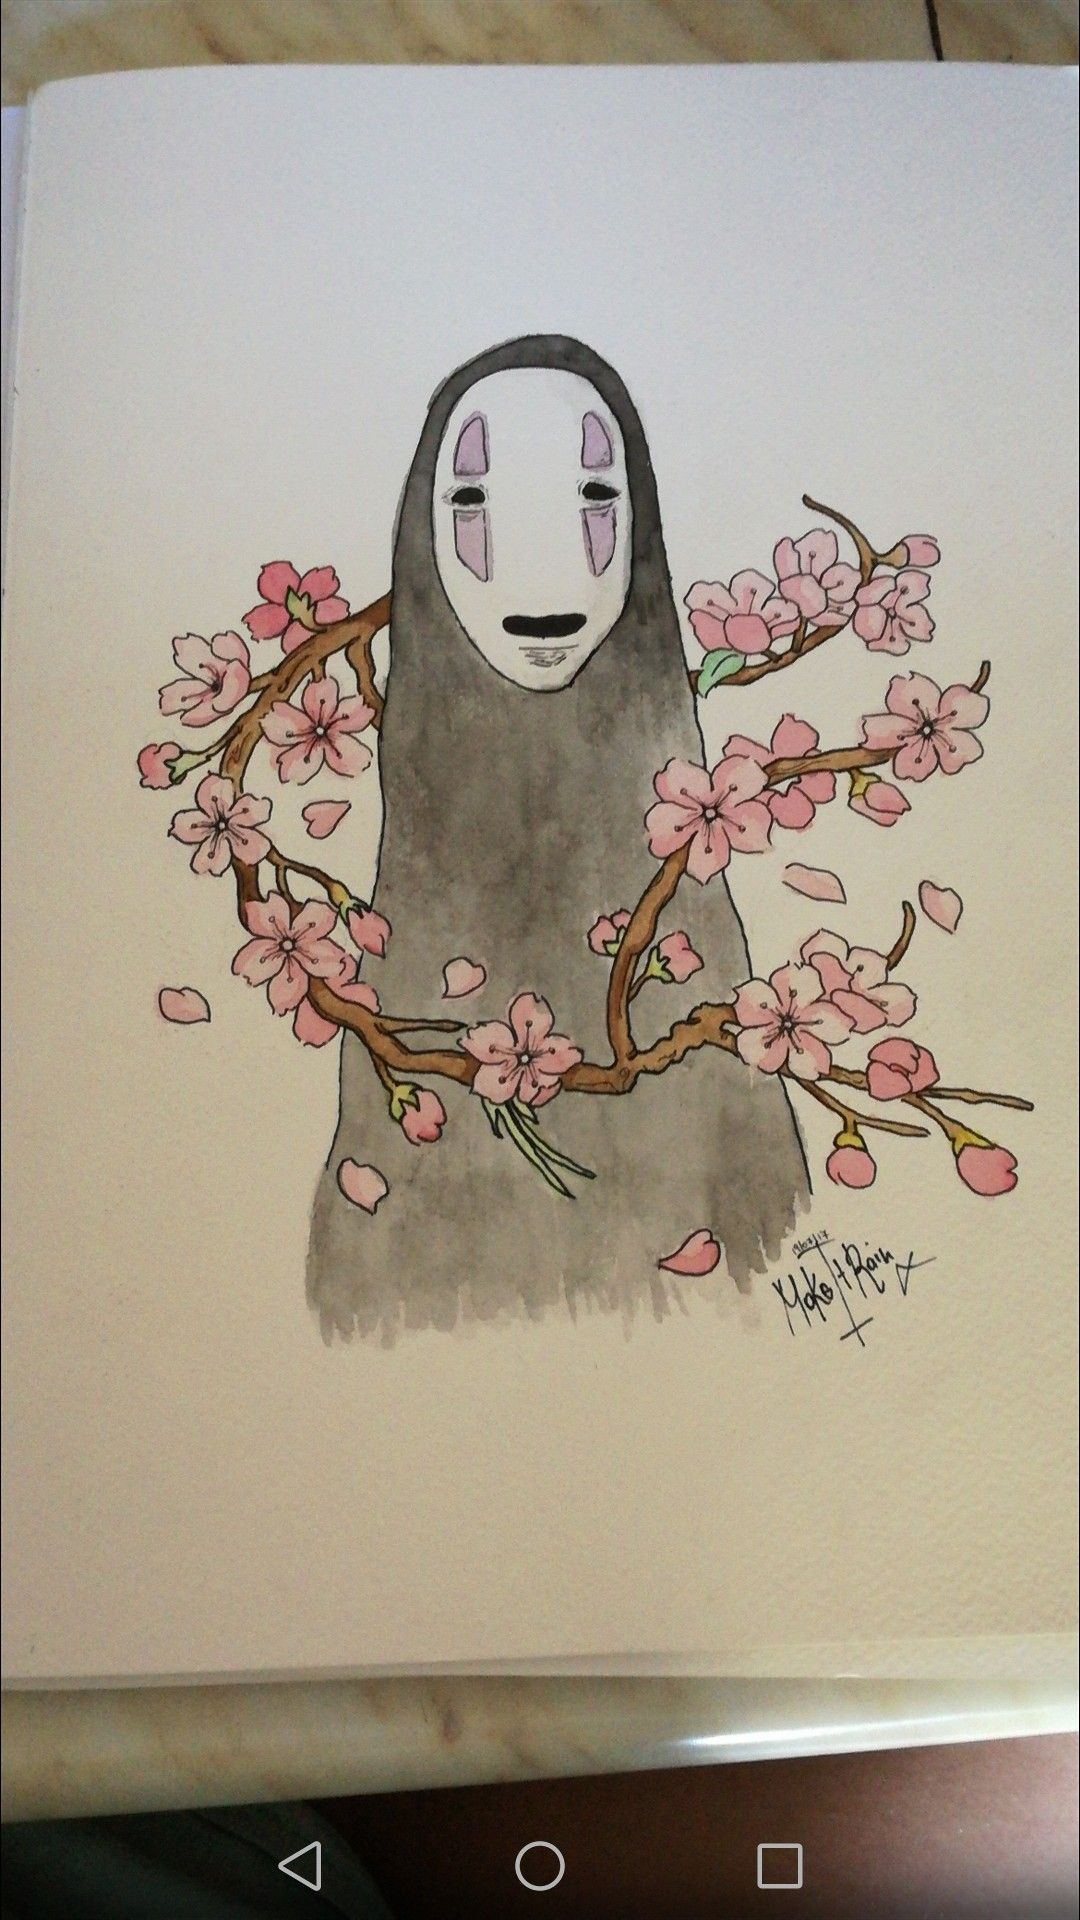 Trying Spirited Away Faceless Sakura Watercolor No Face Without Face Draw Makeitrain Mine Flowers Flower Cherry Blosso Flower Drawing Face Drawing Totoro Art